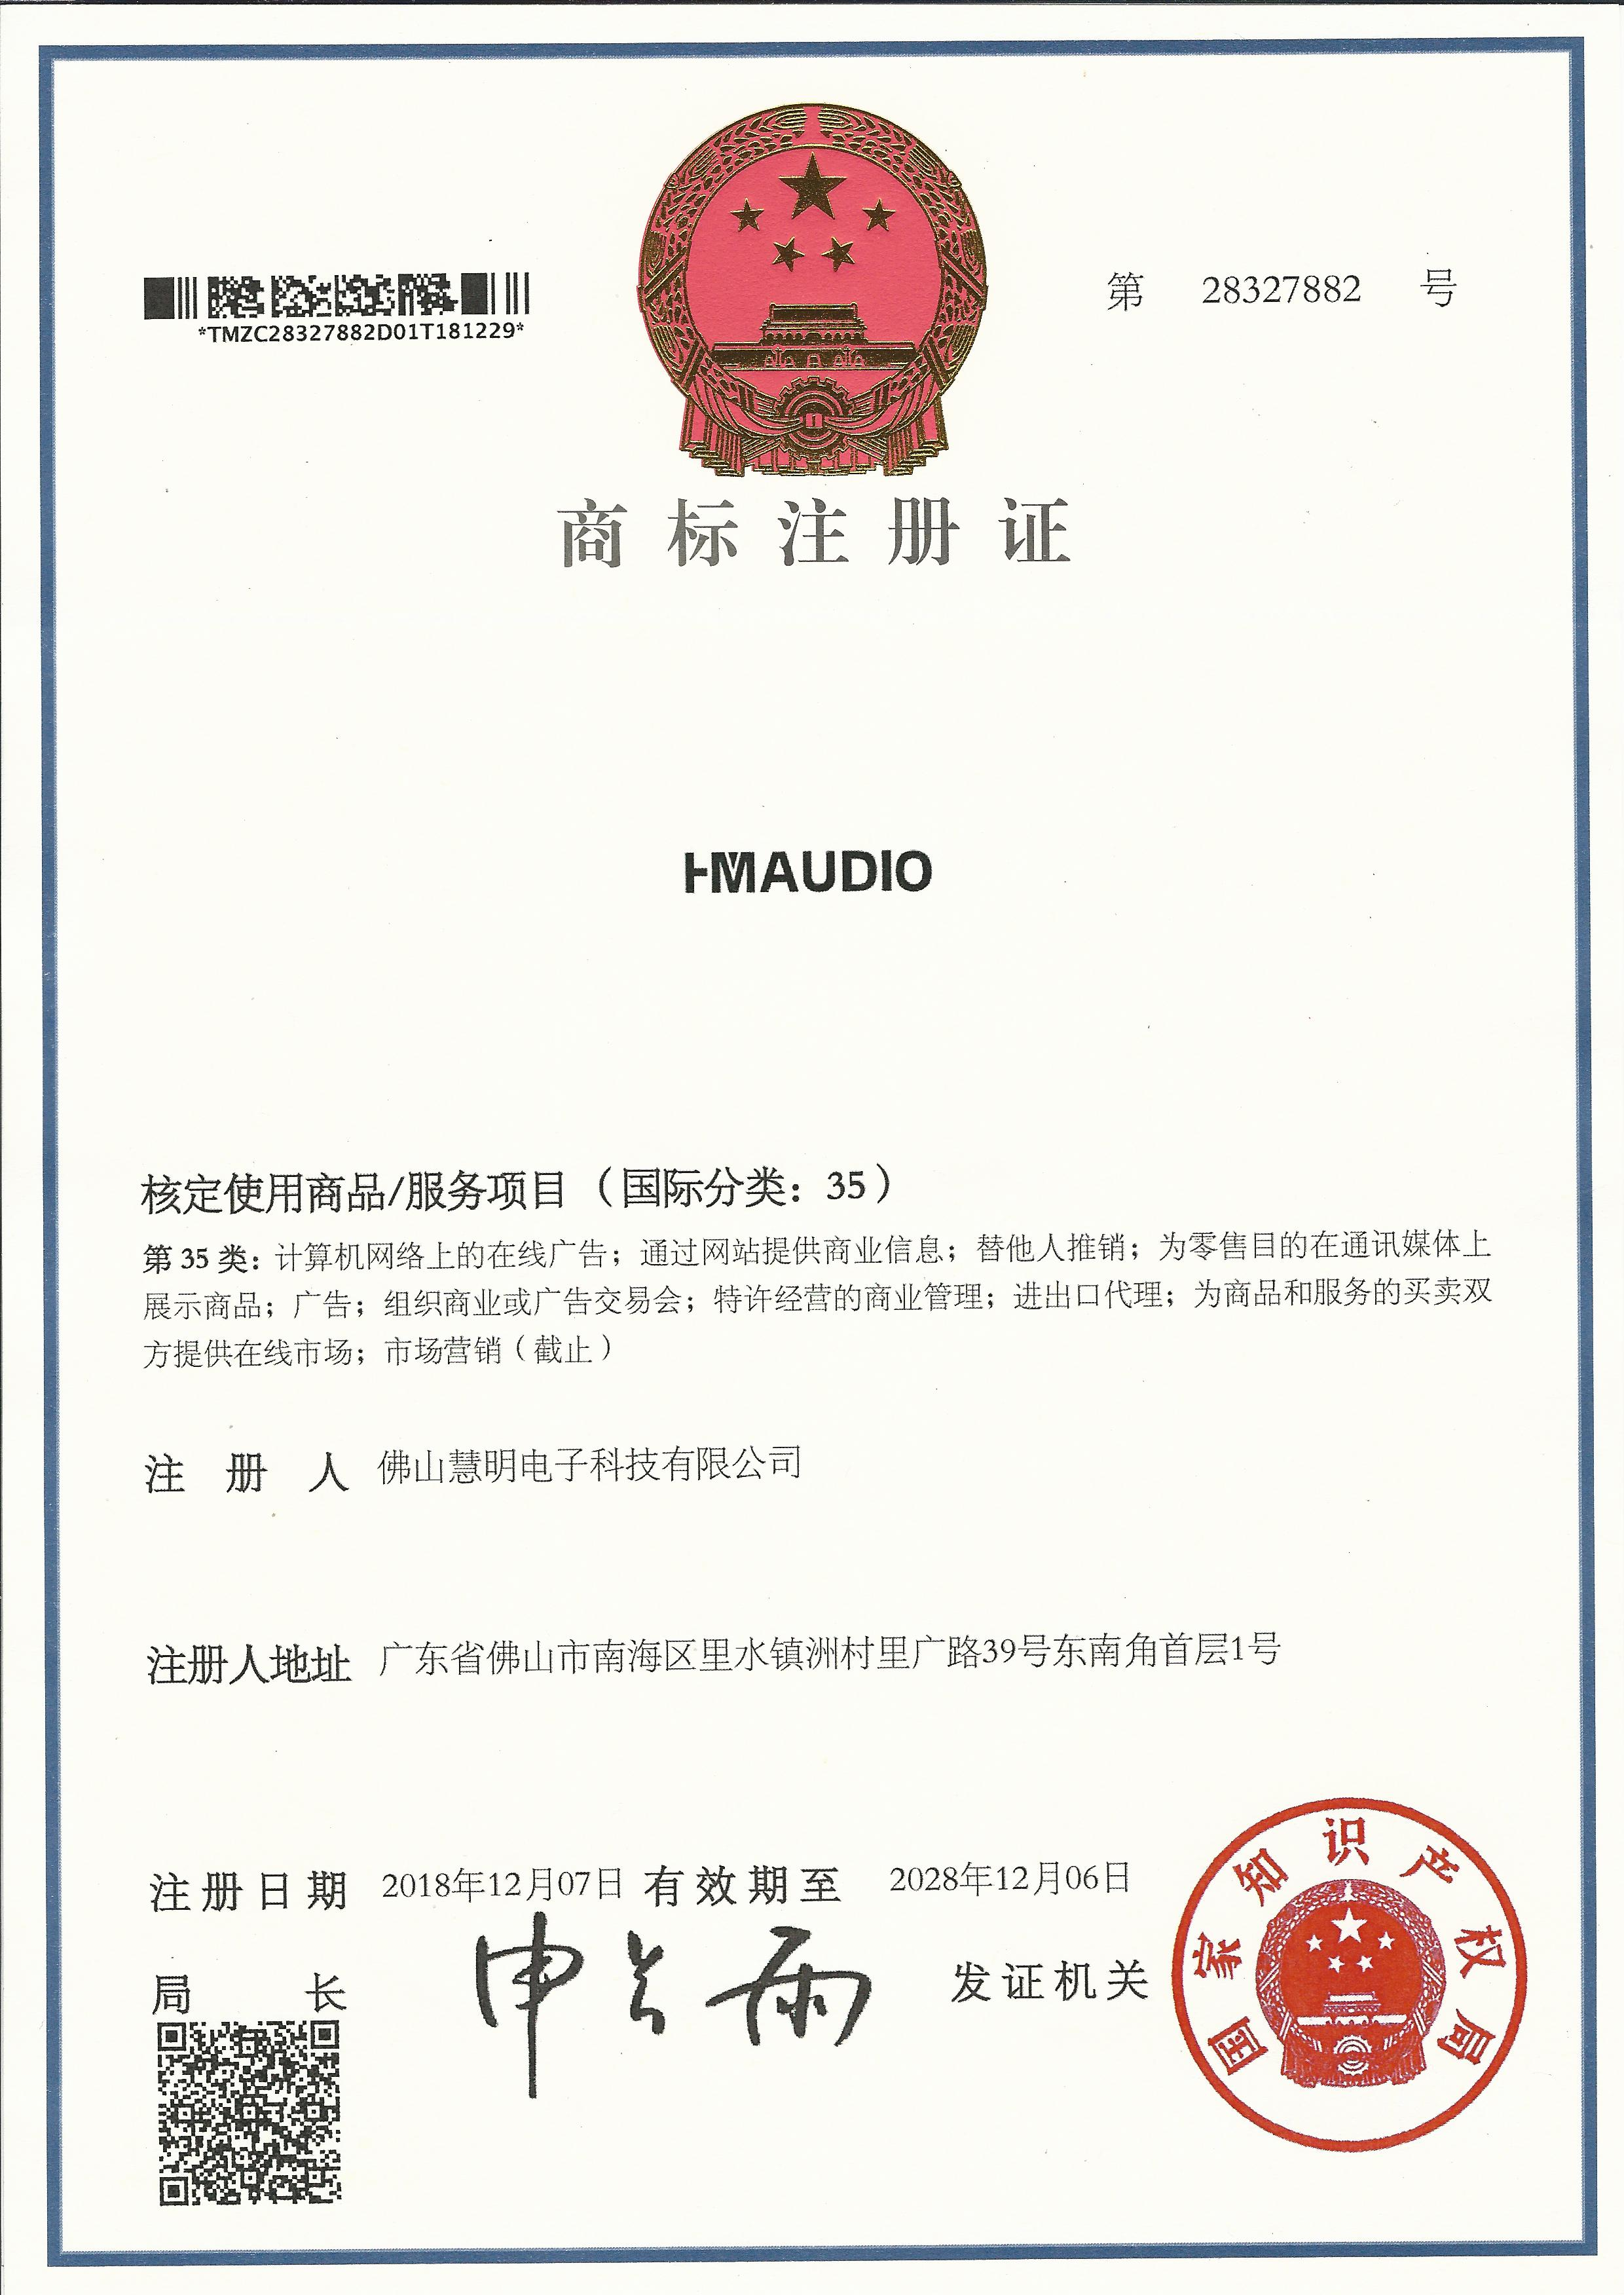 HMAUDIO CERTIFICATE OF REGISTRATION